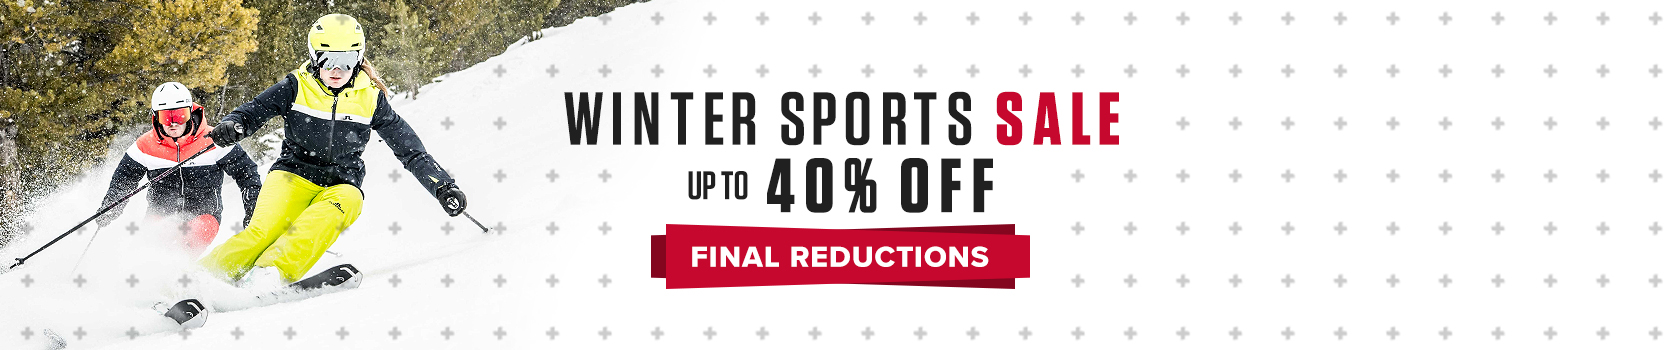 SR-winter-sports-sale-banner-wk25